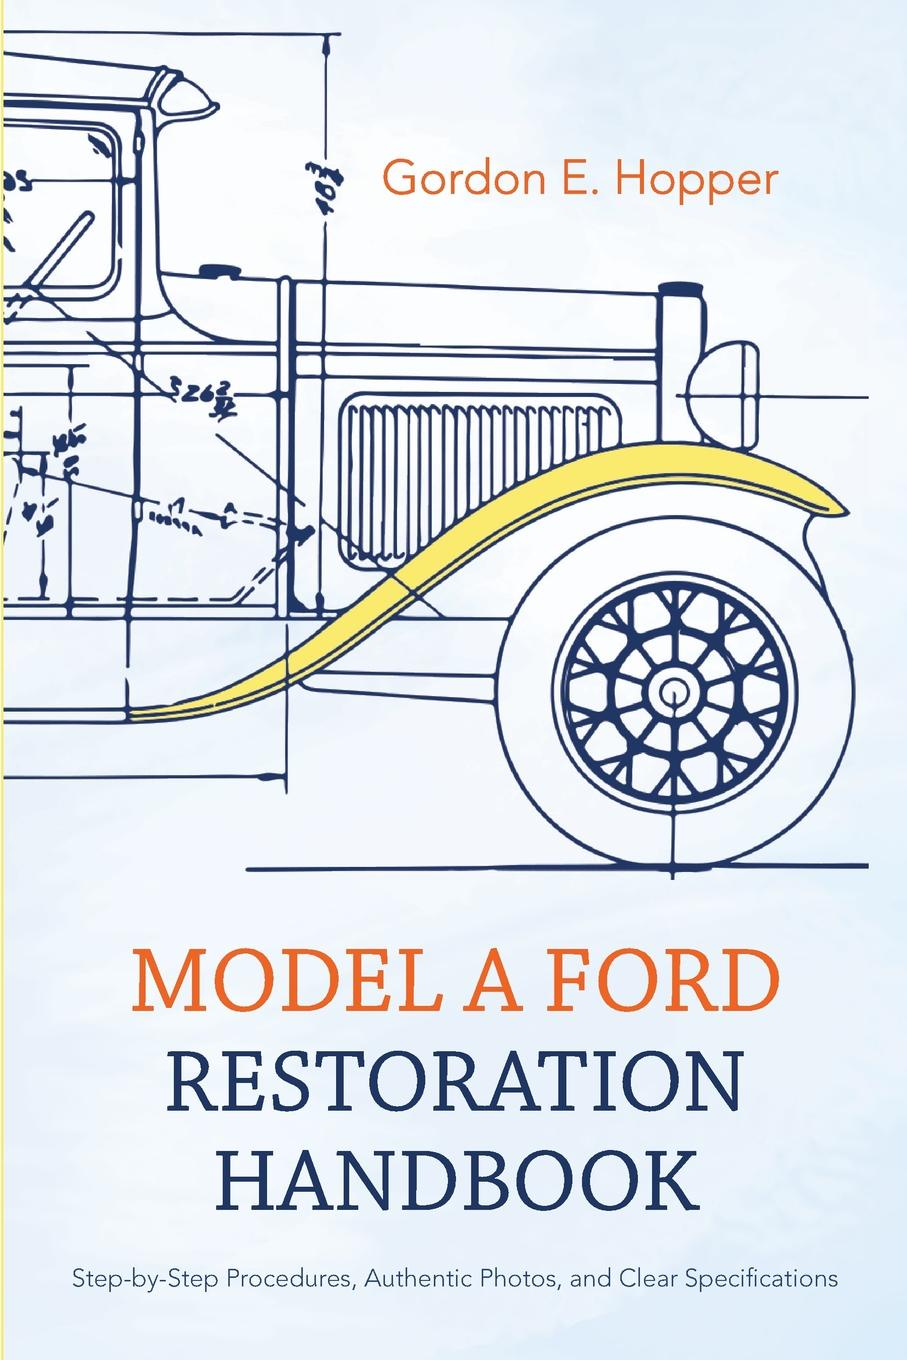 Gordon E. Hopper Model A Ford Restoration Handbook furutech ancient river fp din r black plastic lp5 pin female 5pin rhodium plated version of the arm line